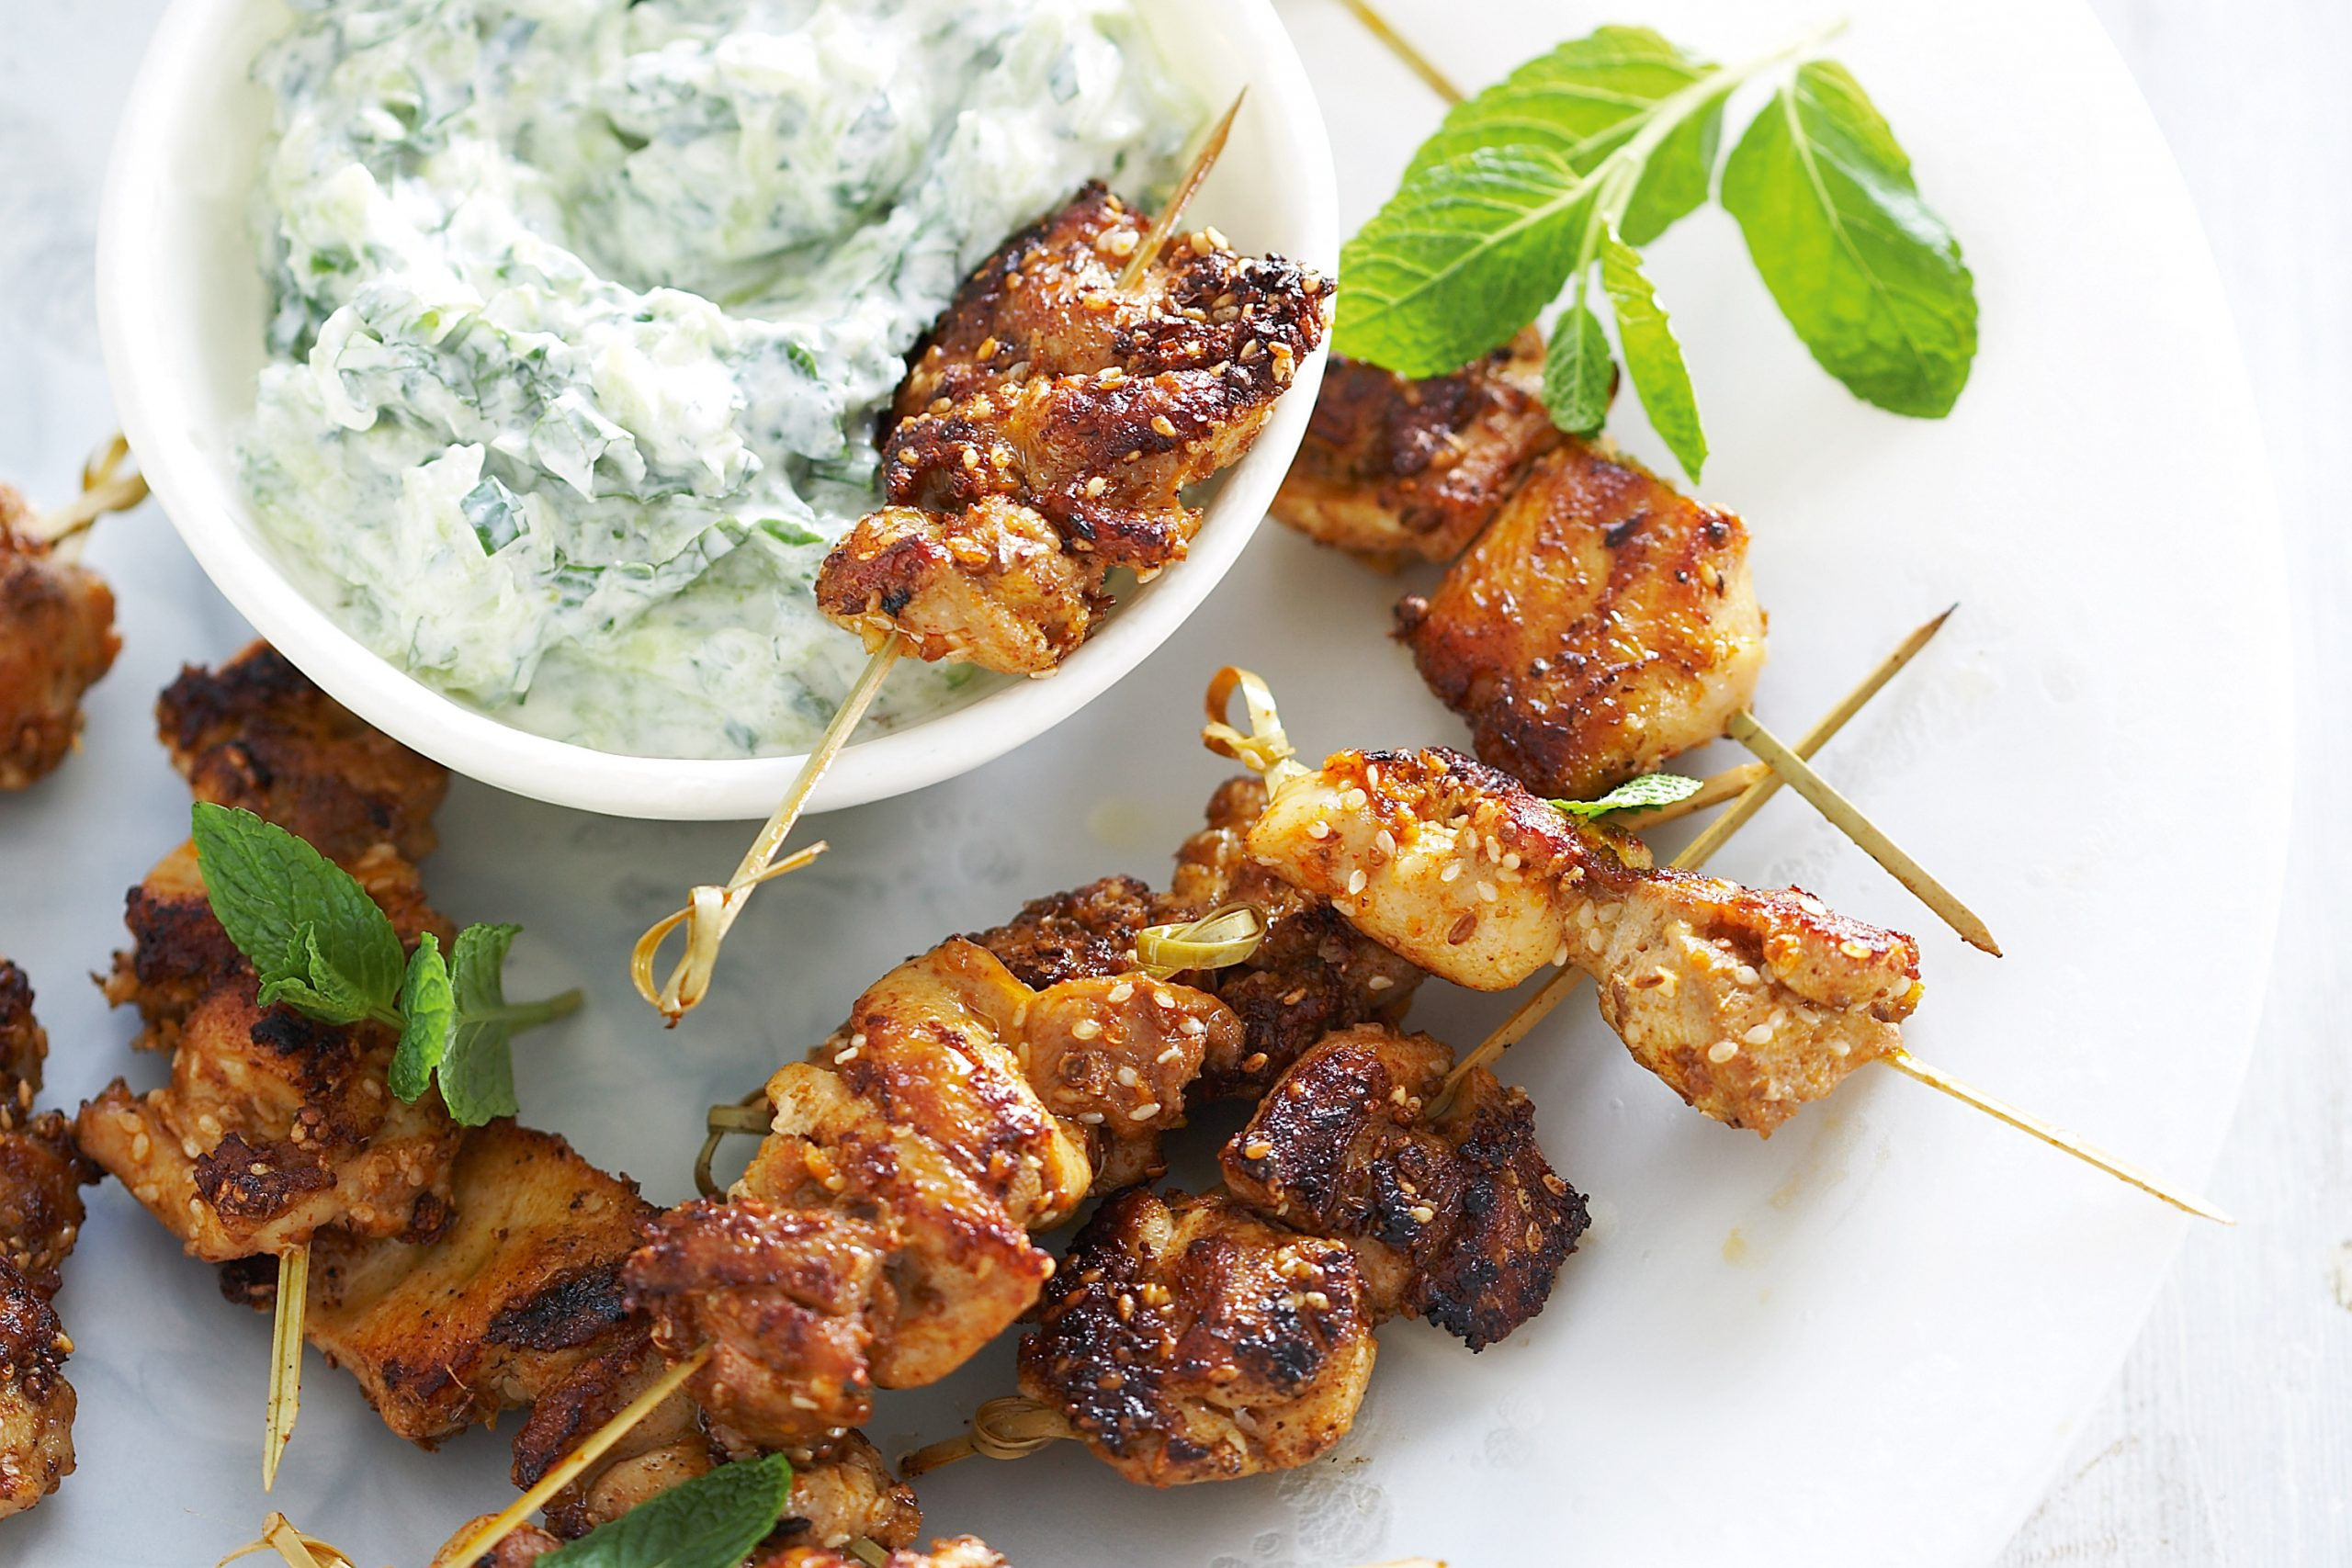 Chicken skewers with tzatziki